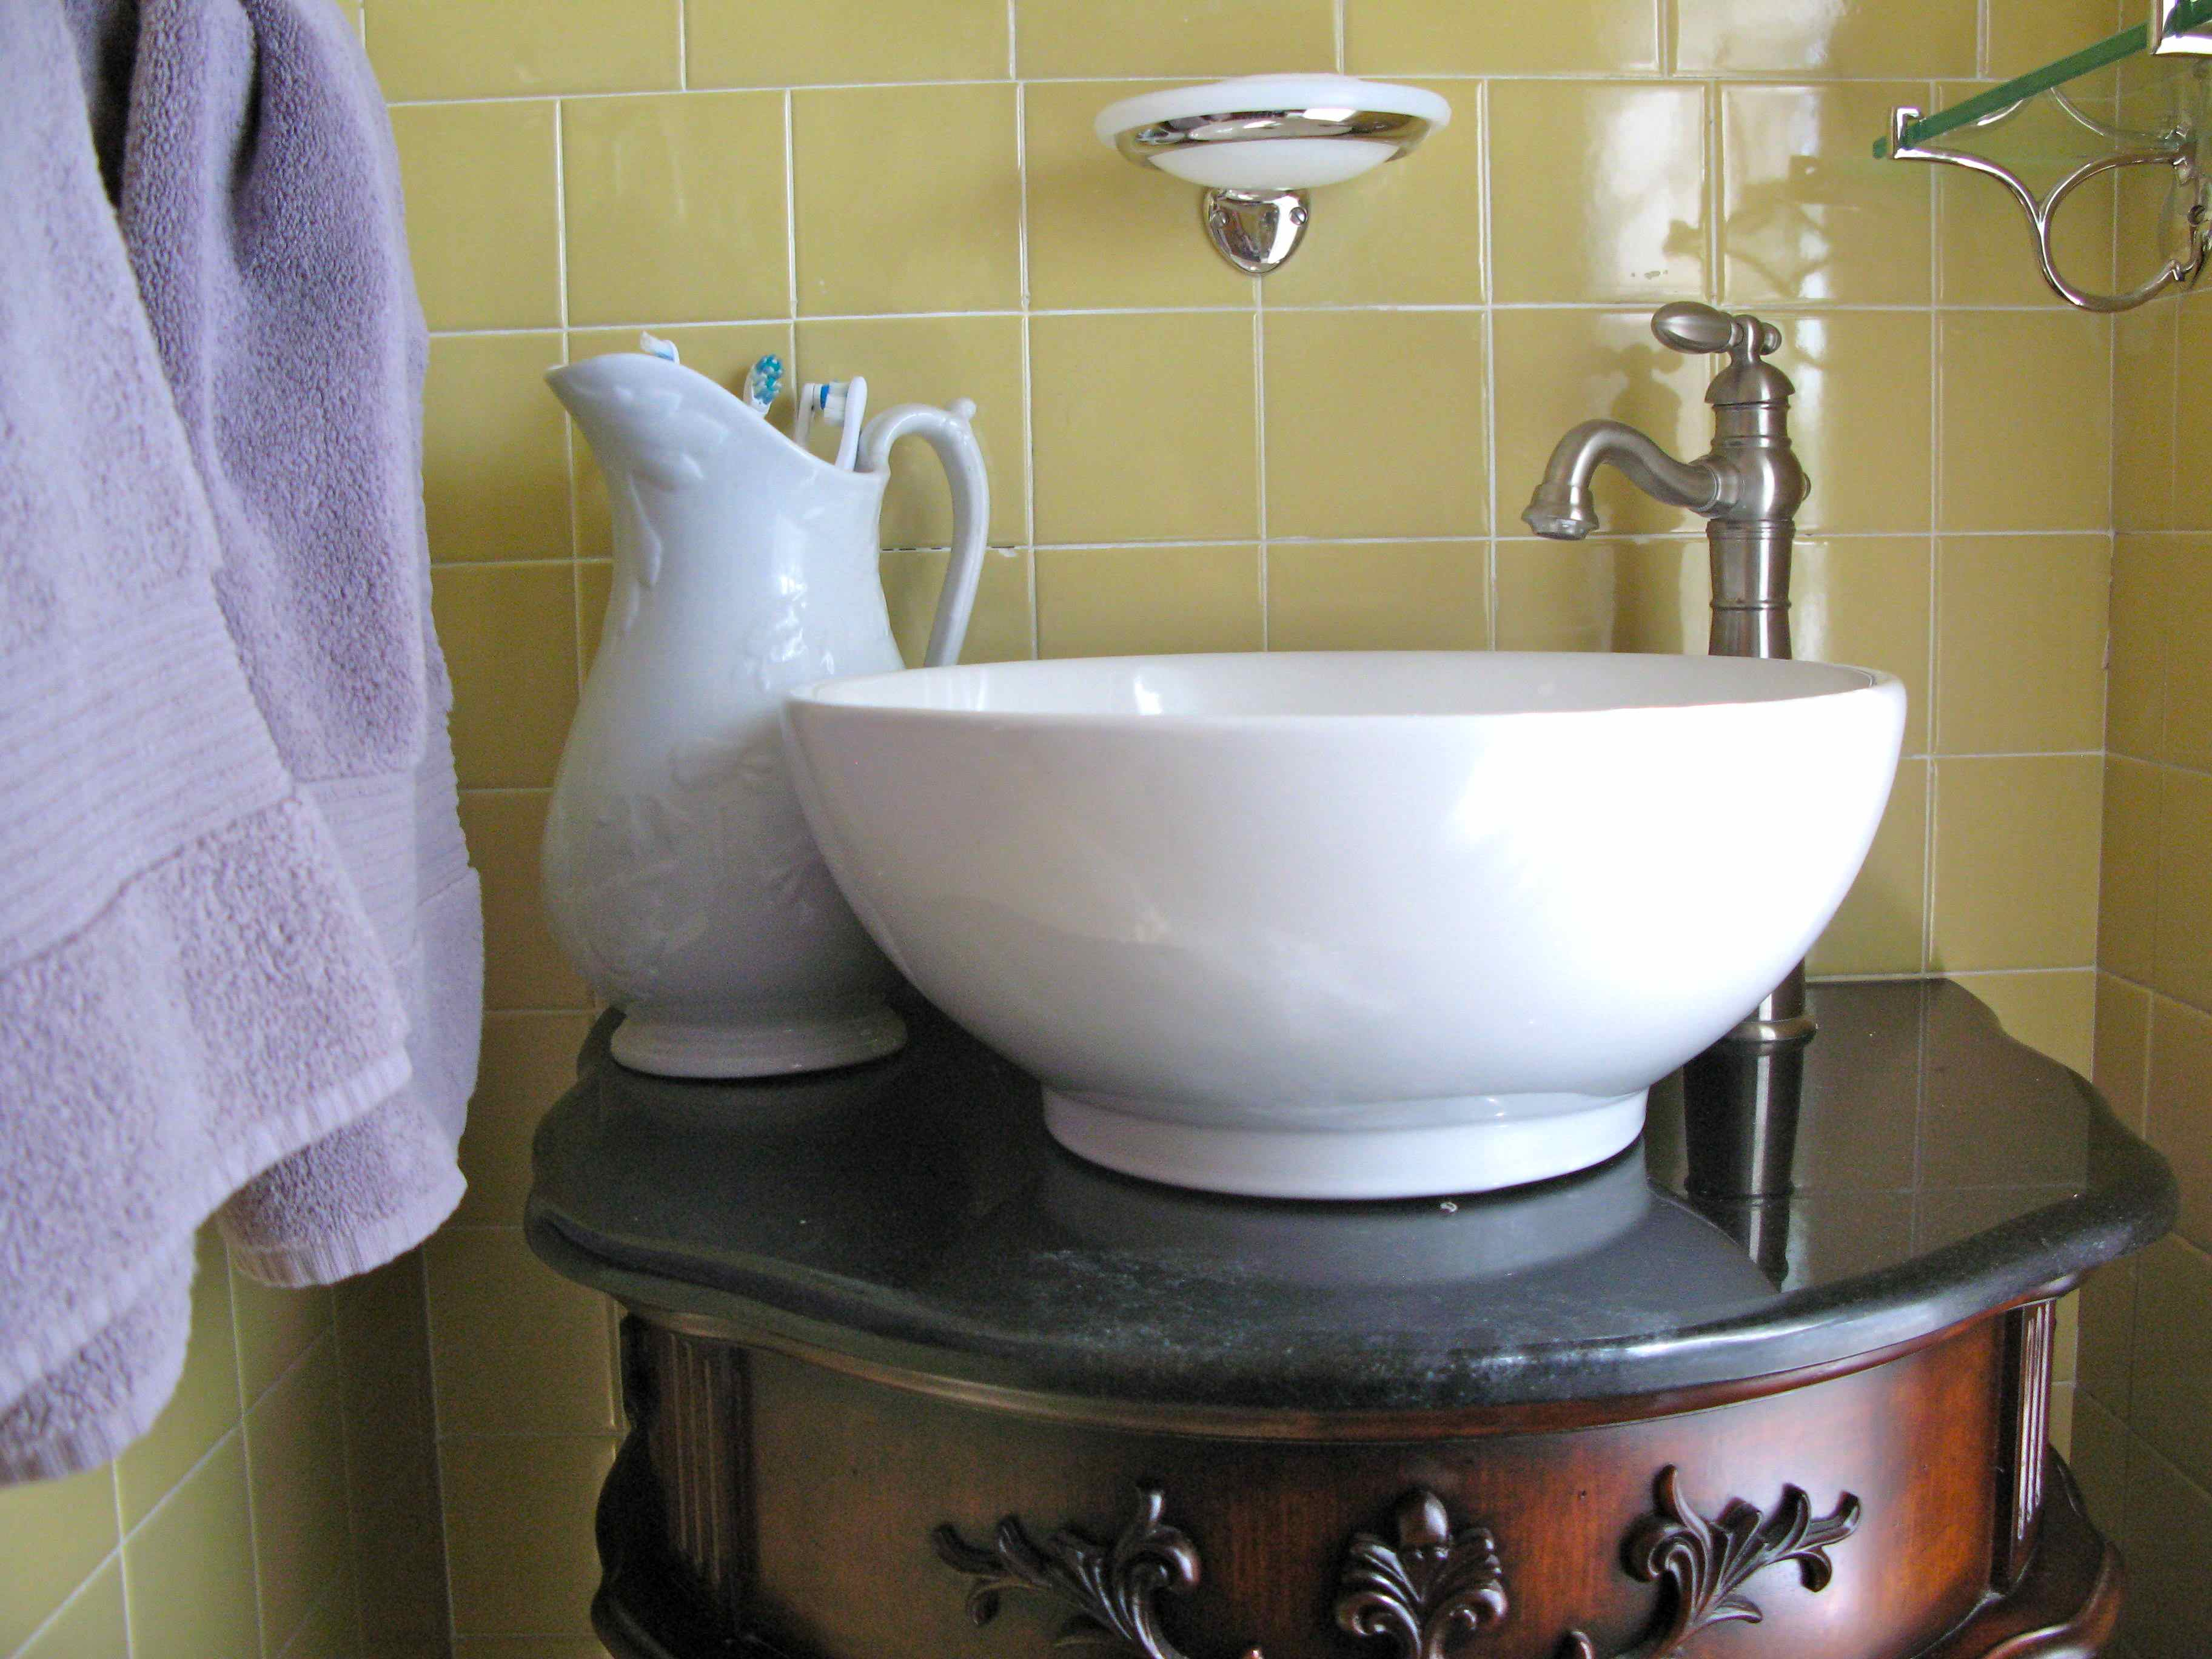 RootsLivingcom Home Projects Details Of The Bathroom Makeover - Bathroom sink stores near me